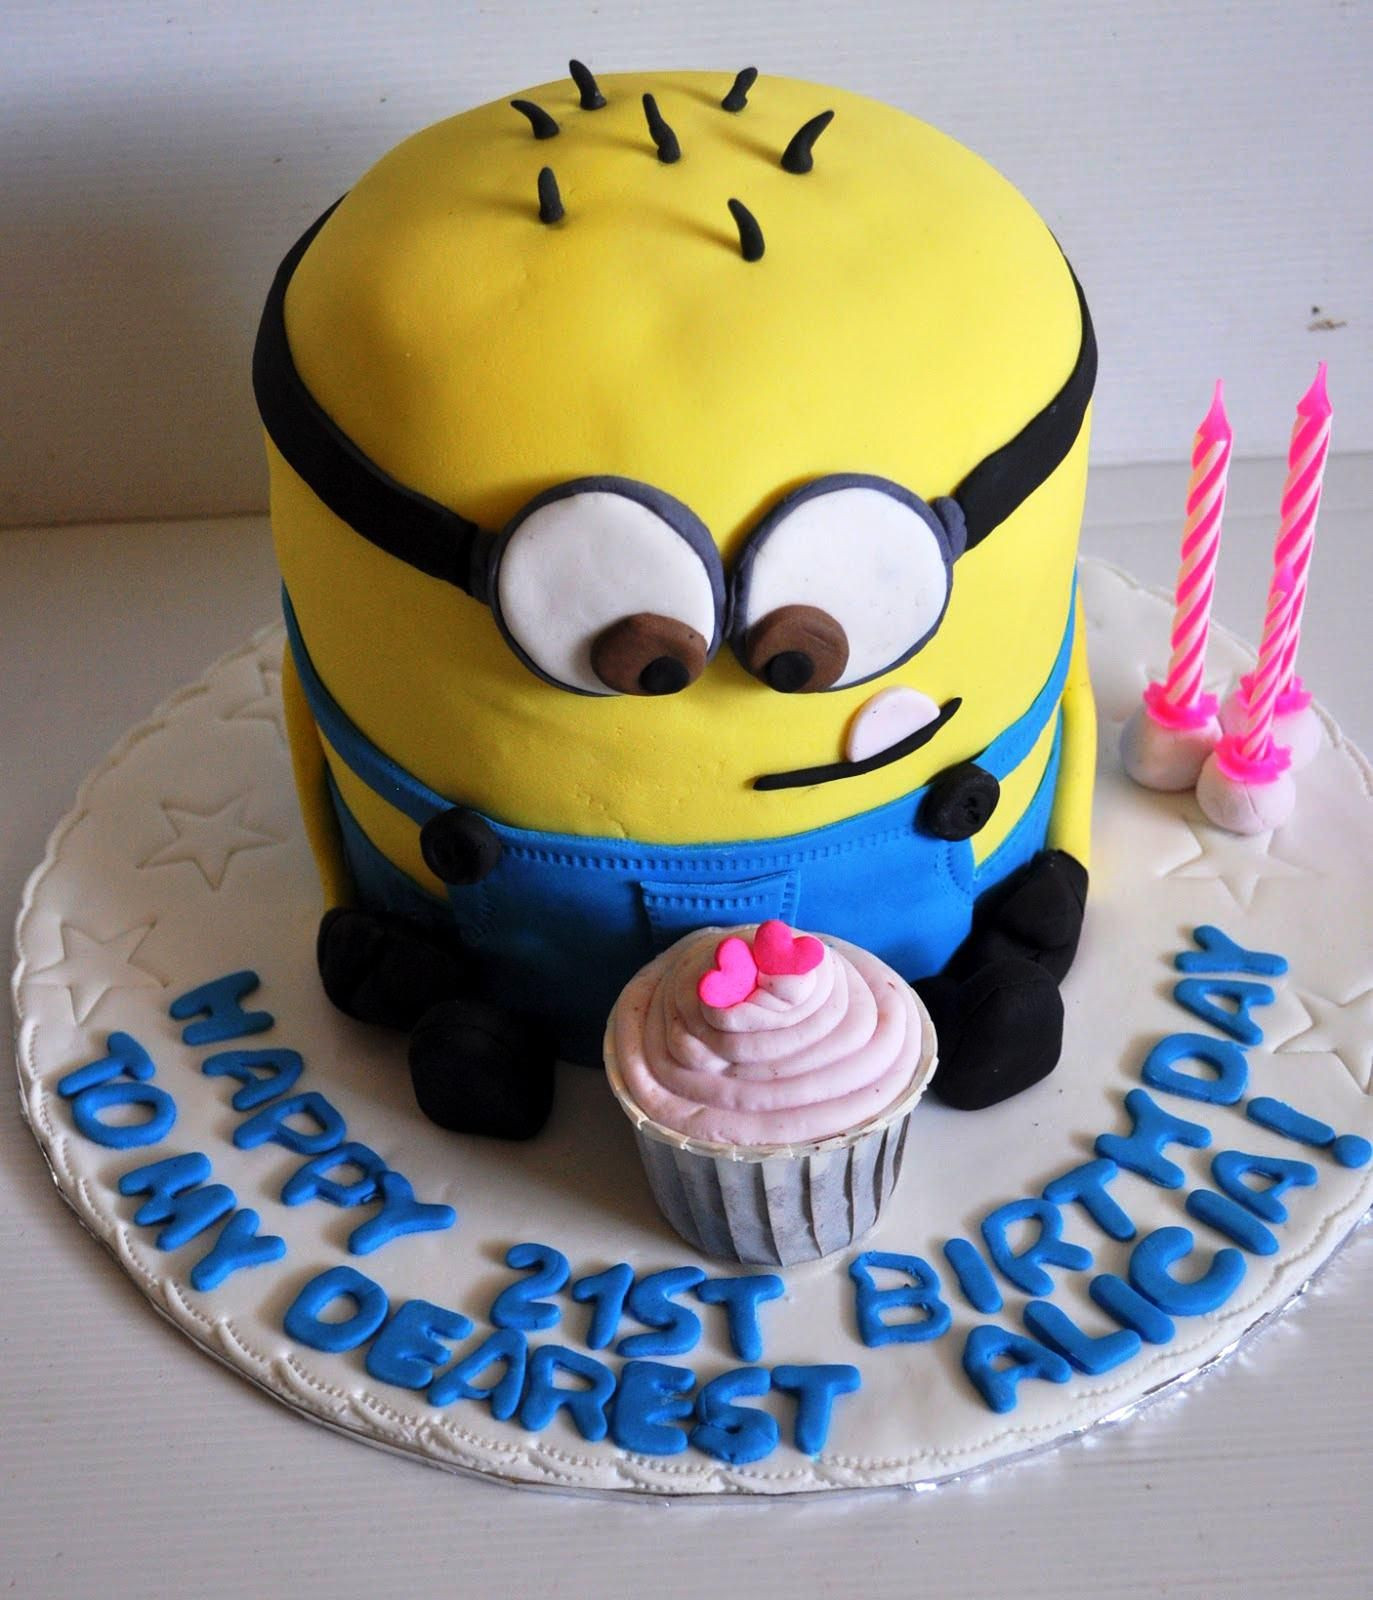 Funny Birthday Cakes Images  Funny 21st Birthday Cake 21st Birthday Cakes to